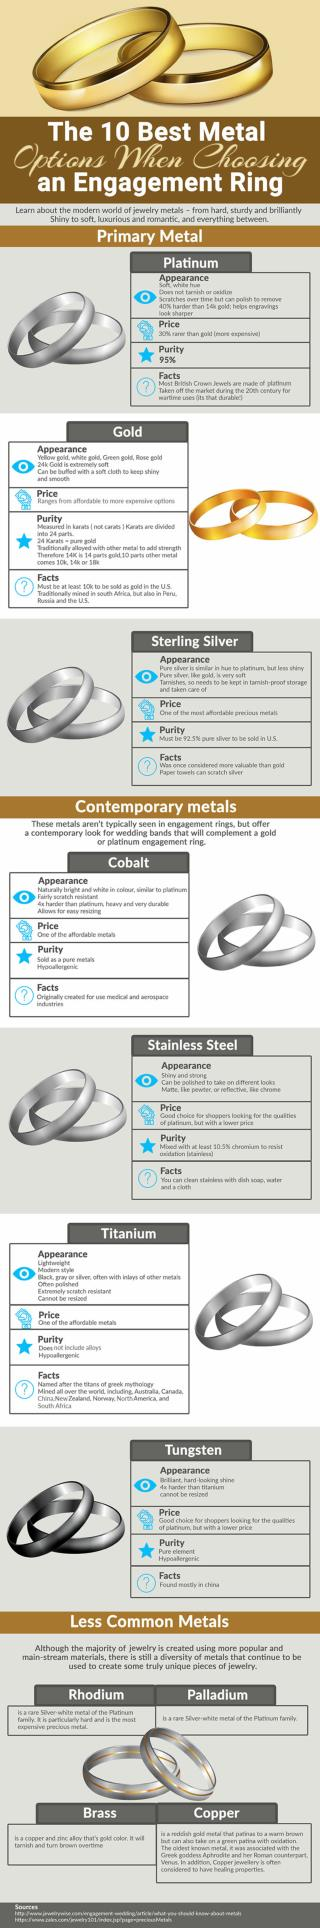 The 10 Best Metal Options When Choosing an Engagement Ring